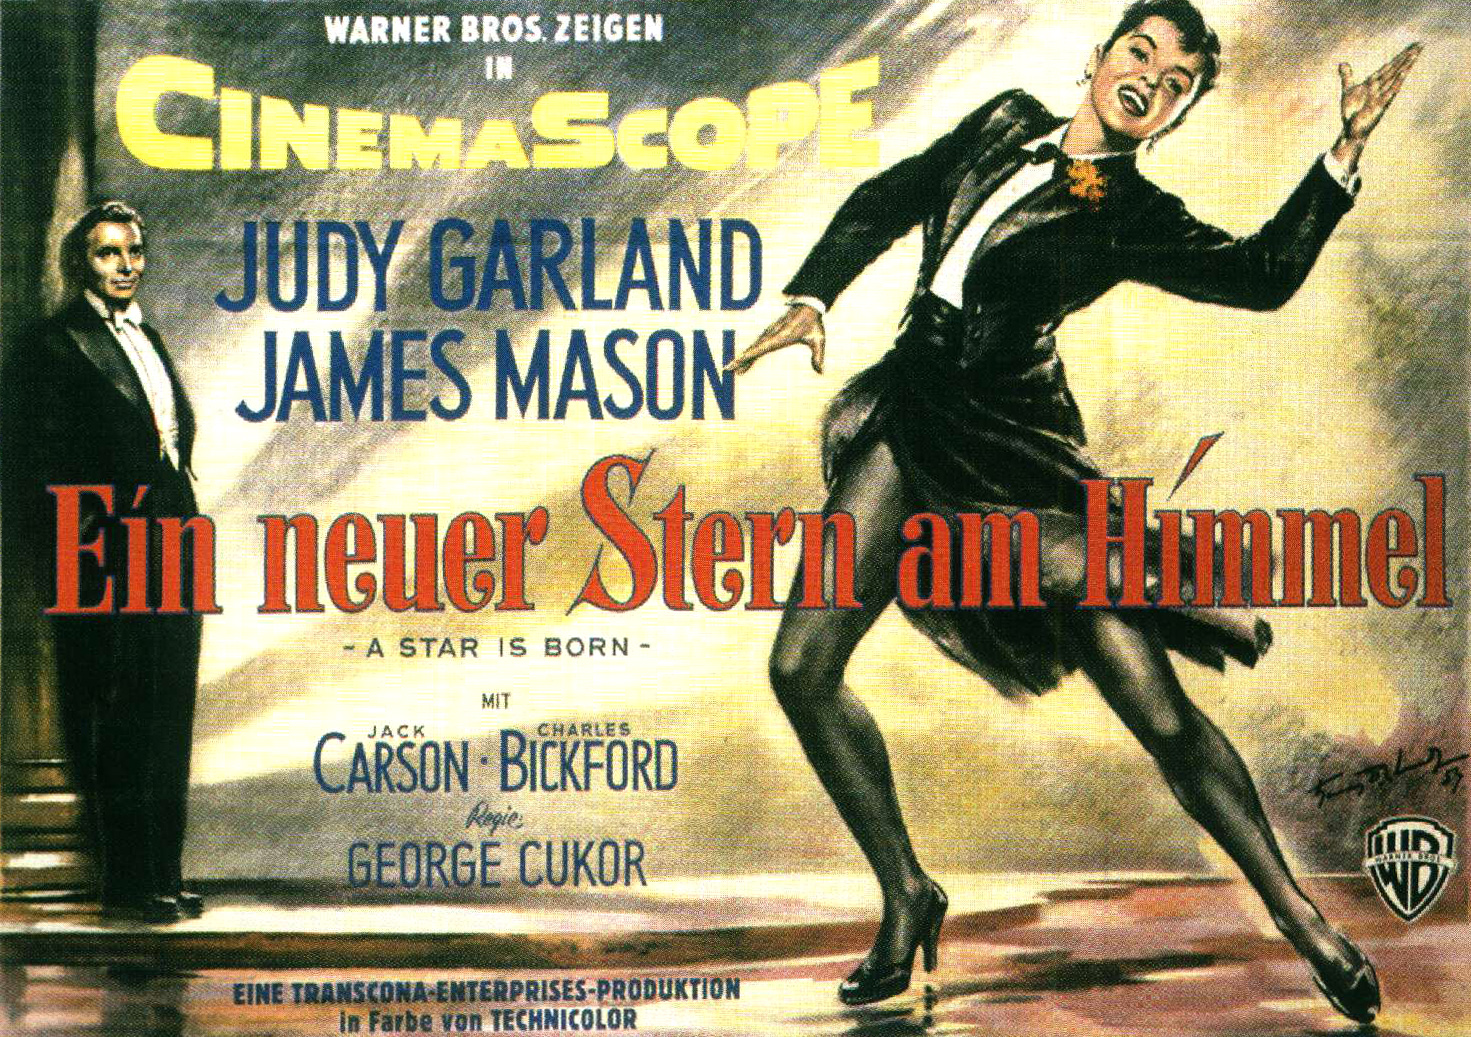 poster_a_star_is_born_1954_02.jpg